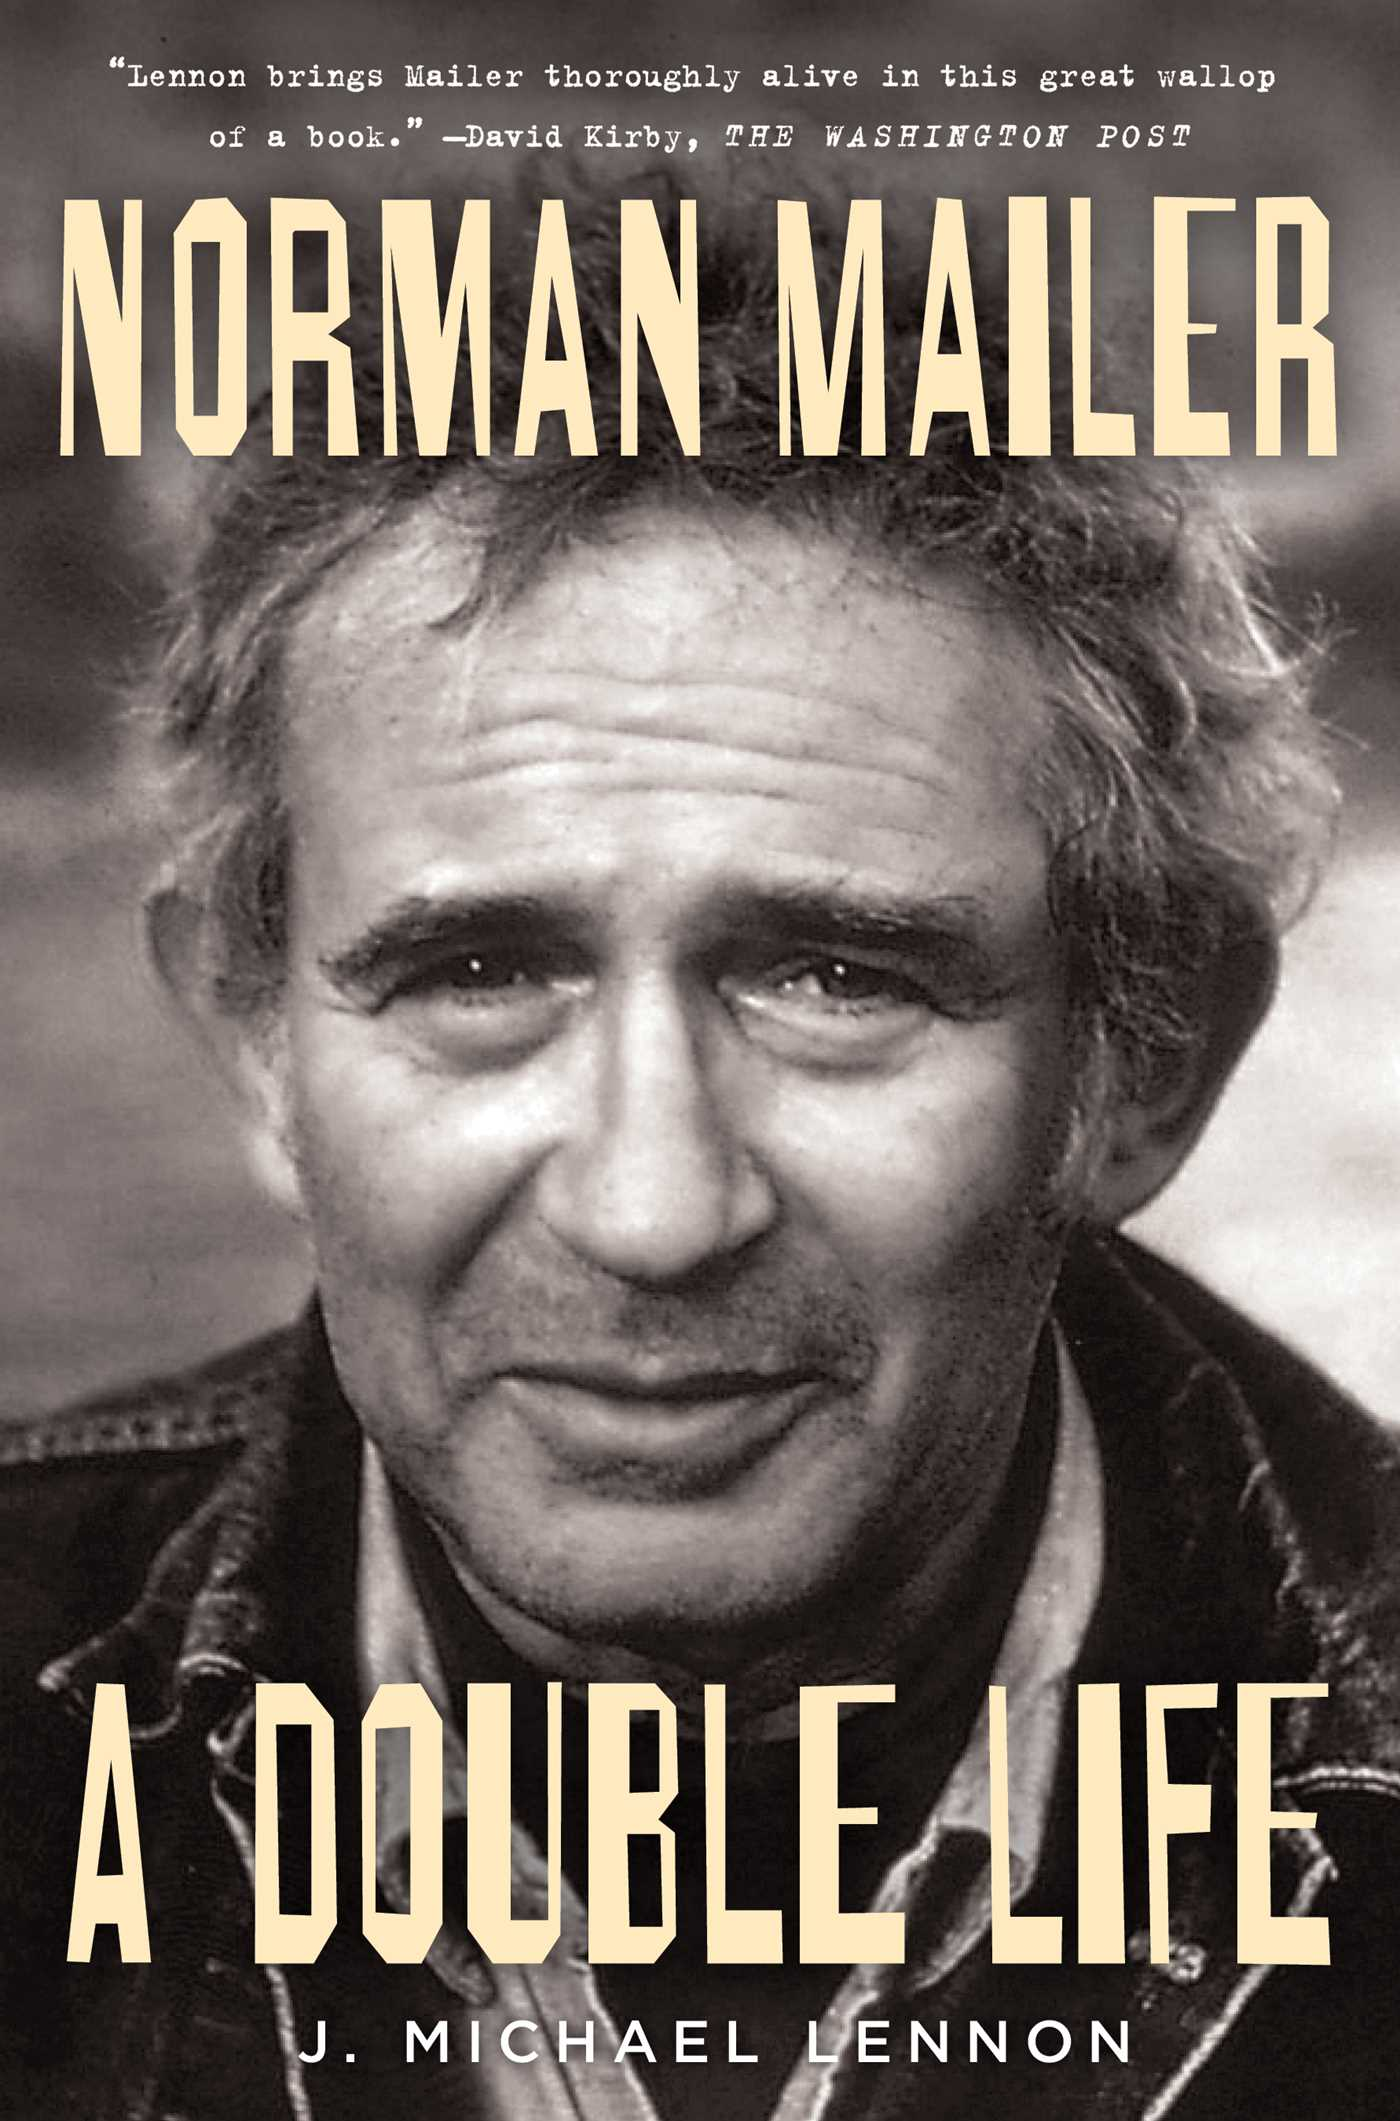 Norman-mailer-a-double-life-9781439150214_hr